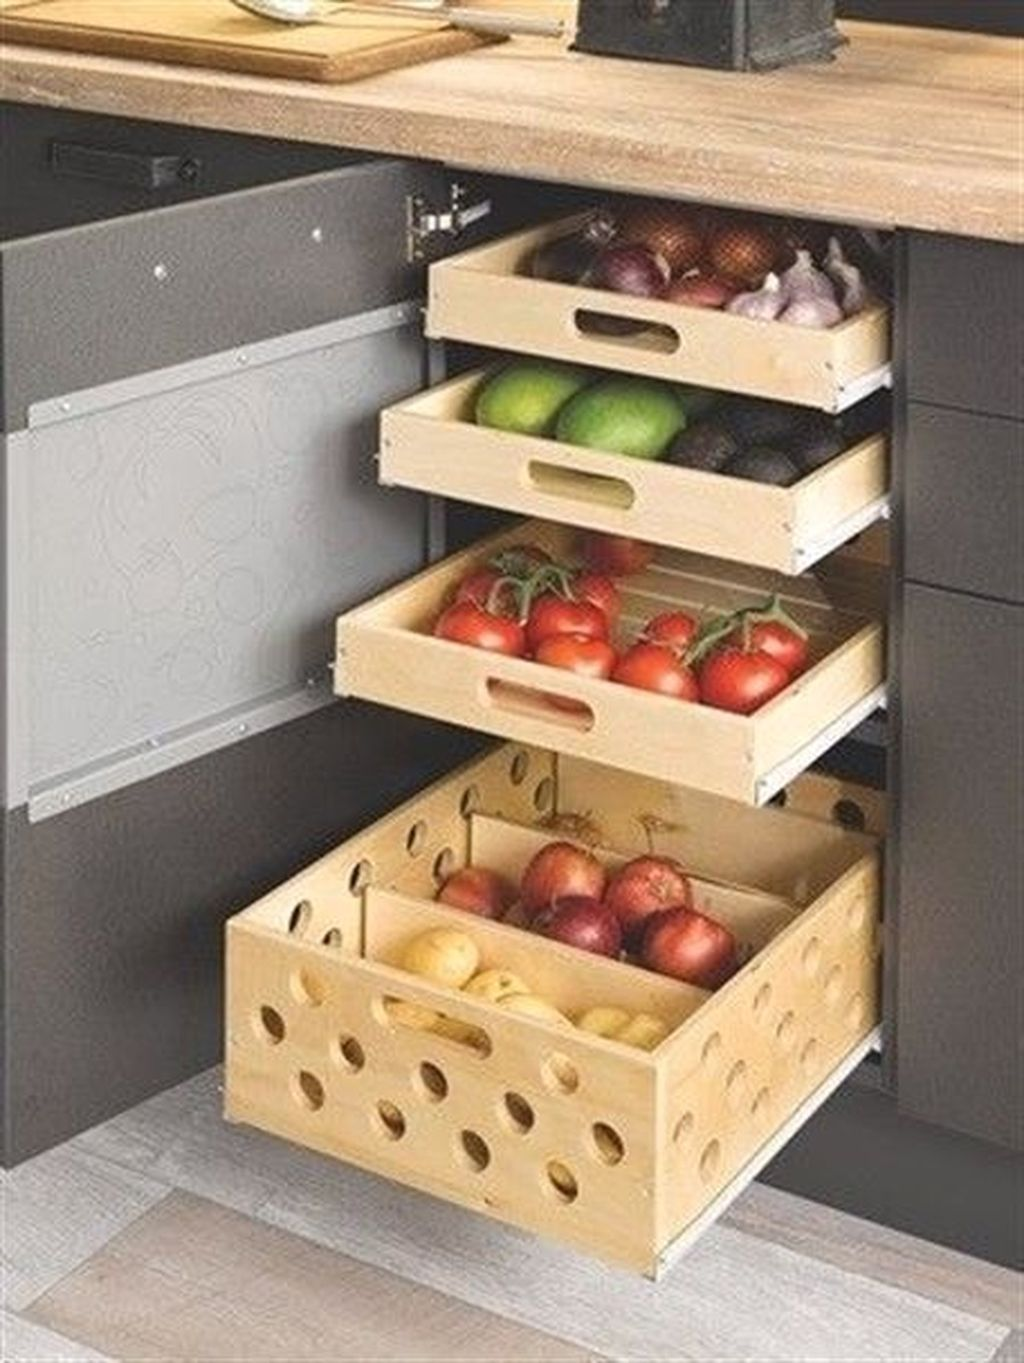 46 Awesome Kitchen Organization Ideas Kuche Ablage Kuche Diy Und Kuchenumbau